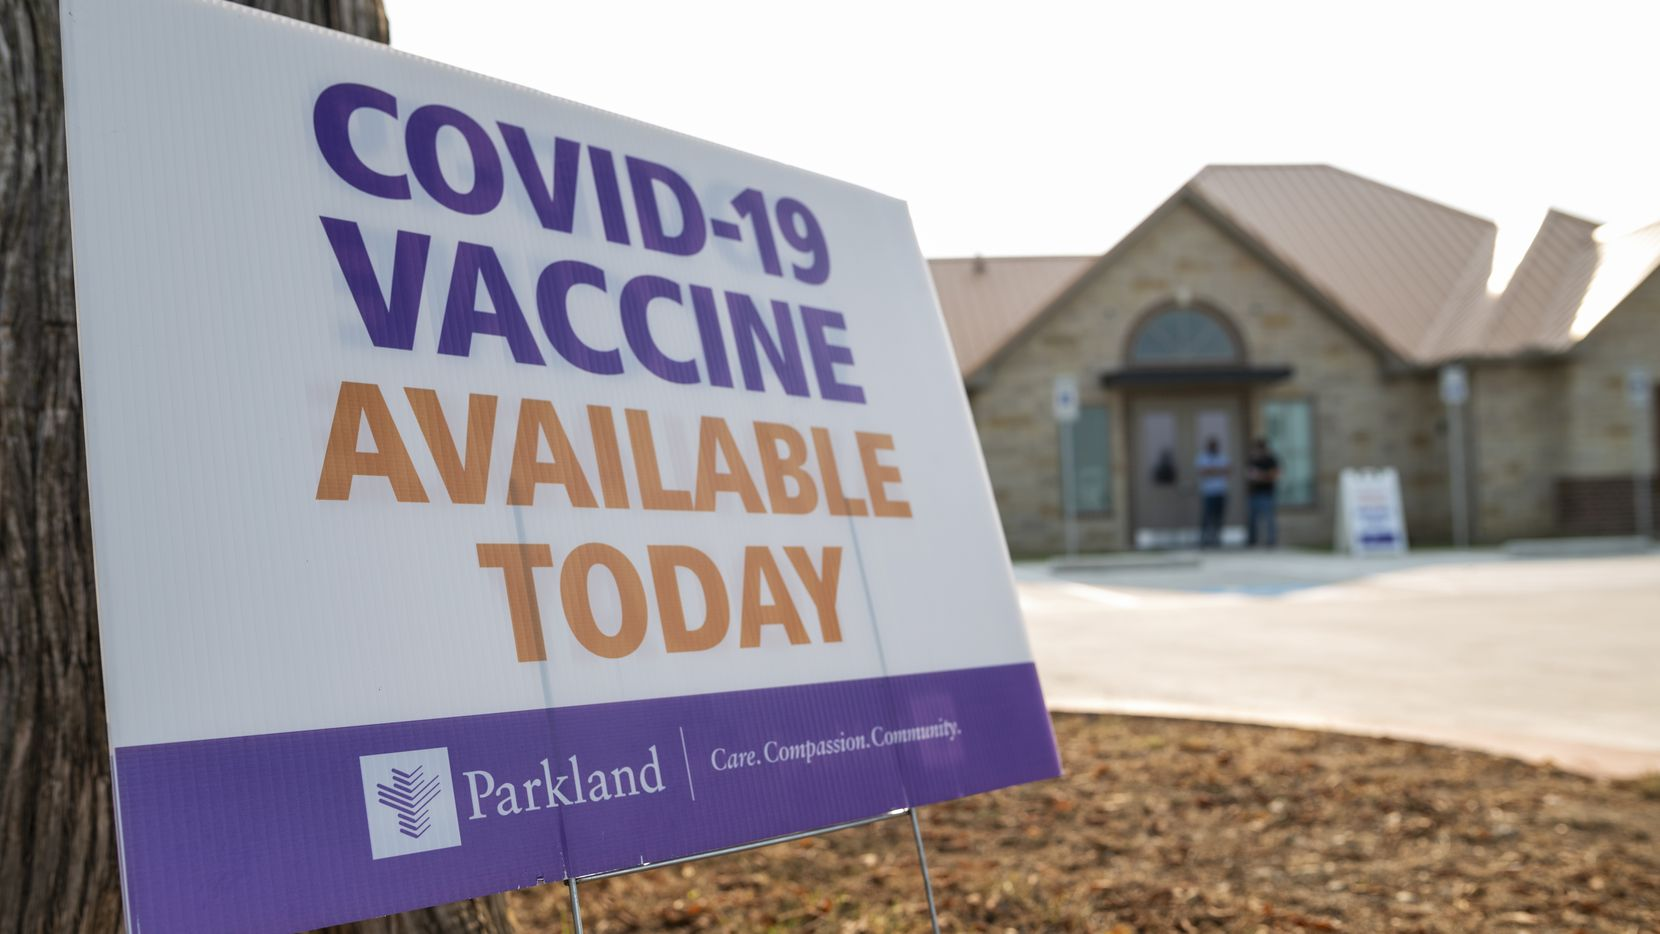 A sign advertised a COVID-19 vaccination clinic at the Glenn Heights Senior Center on Saturday.